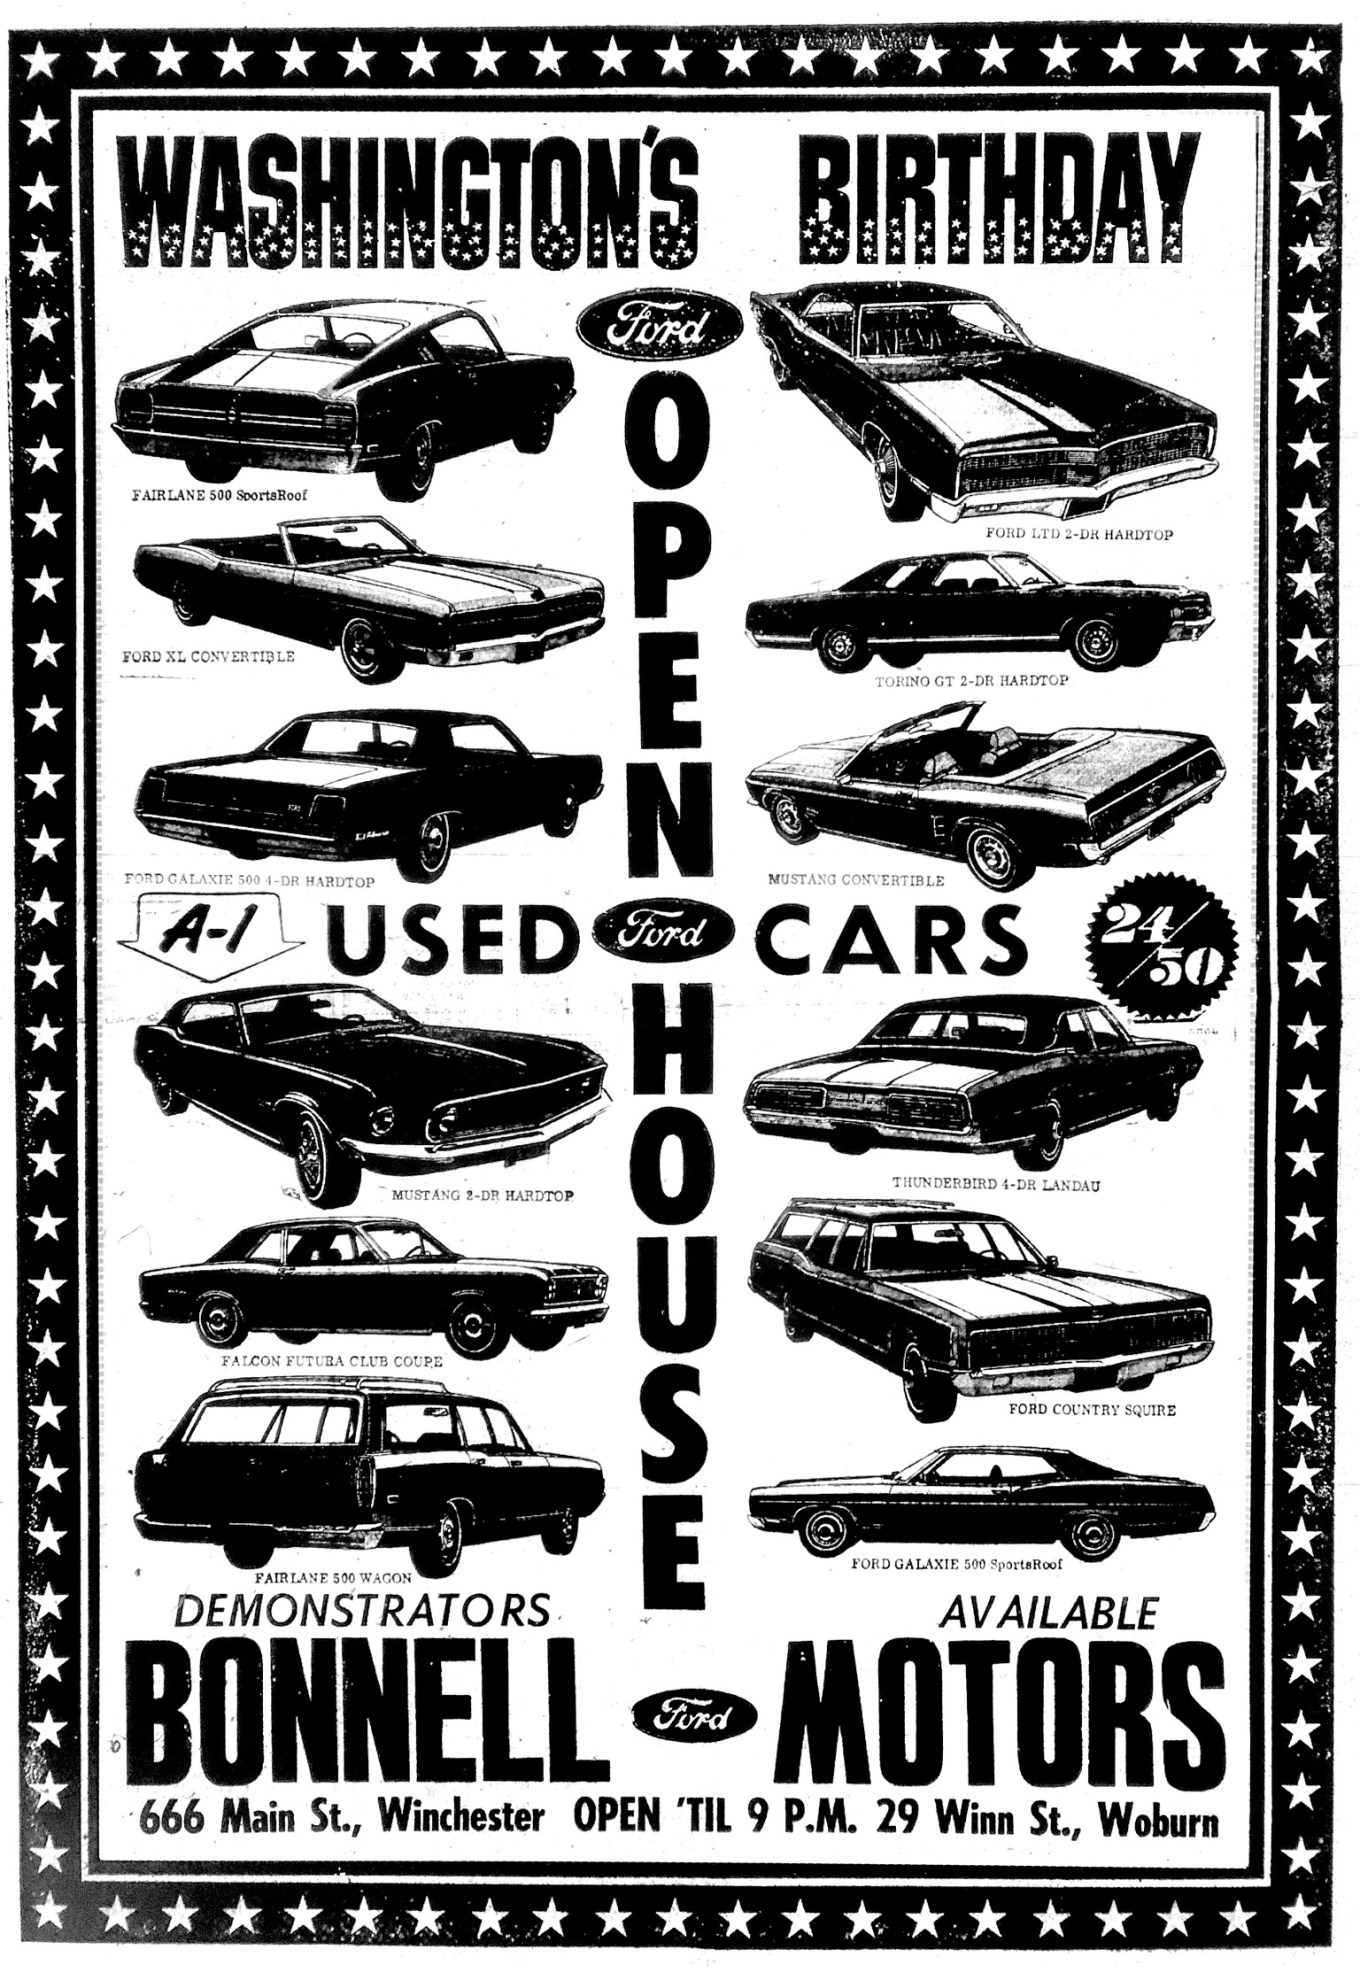 Bonnell Motors ad